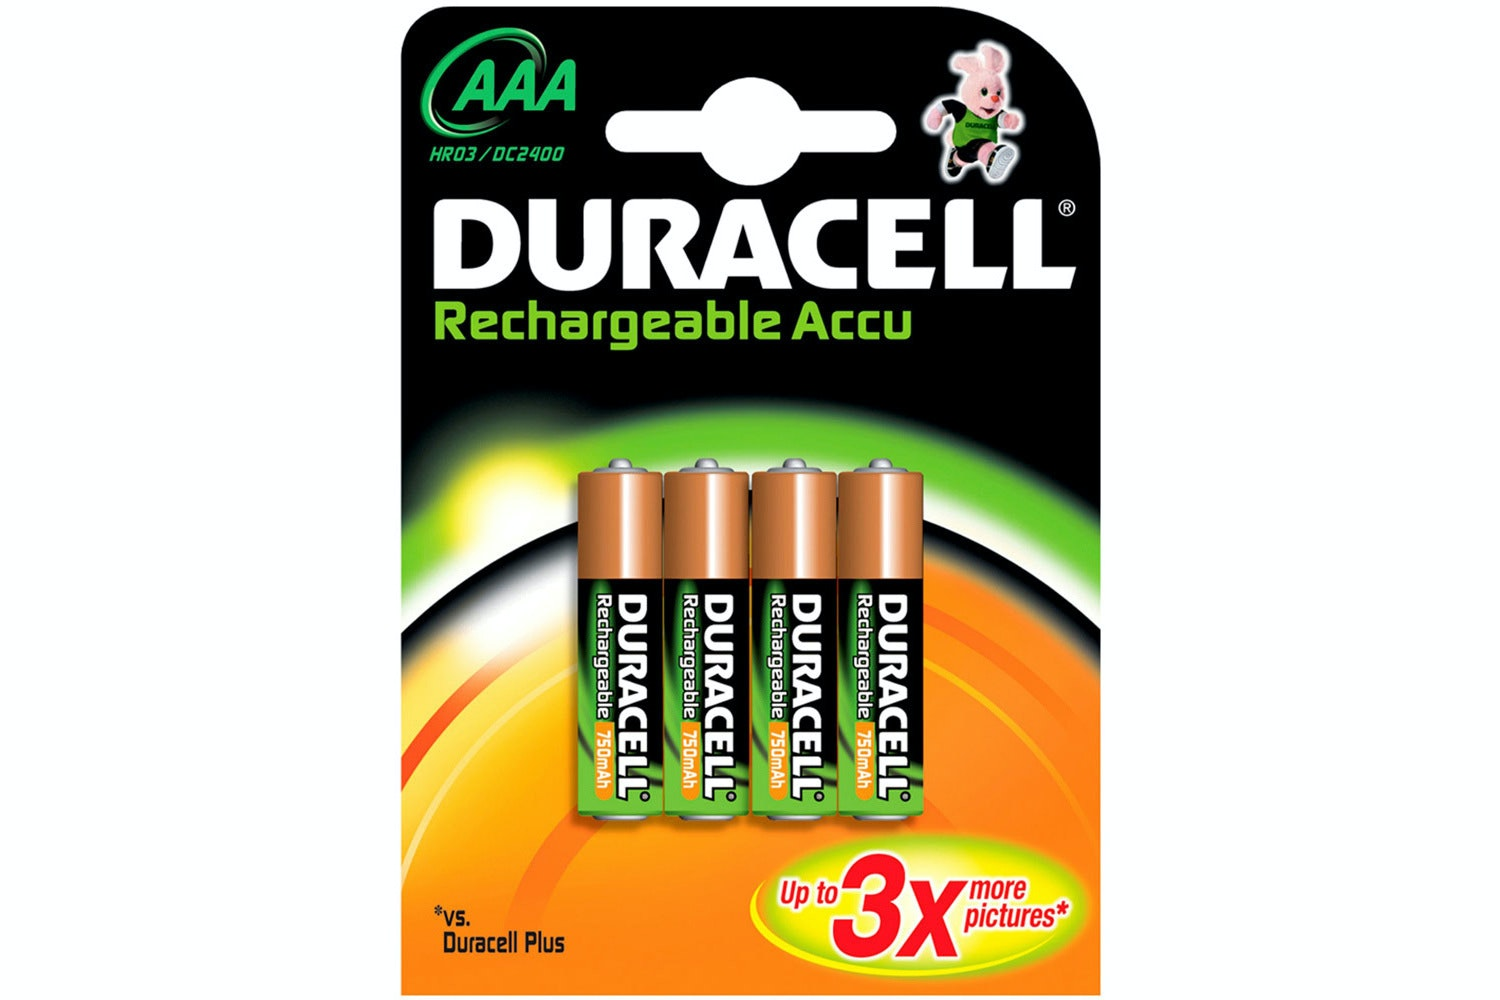 Duracell Rechargeable AAA Batteries | 4 Pack